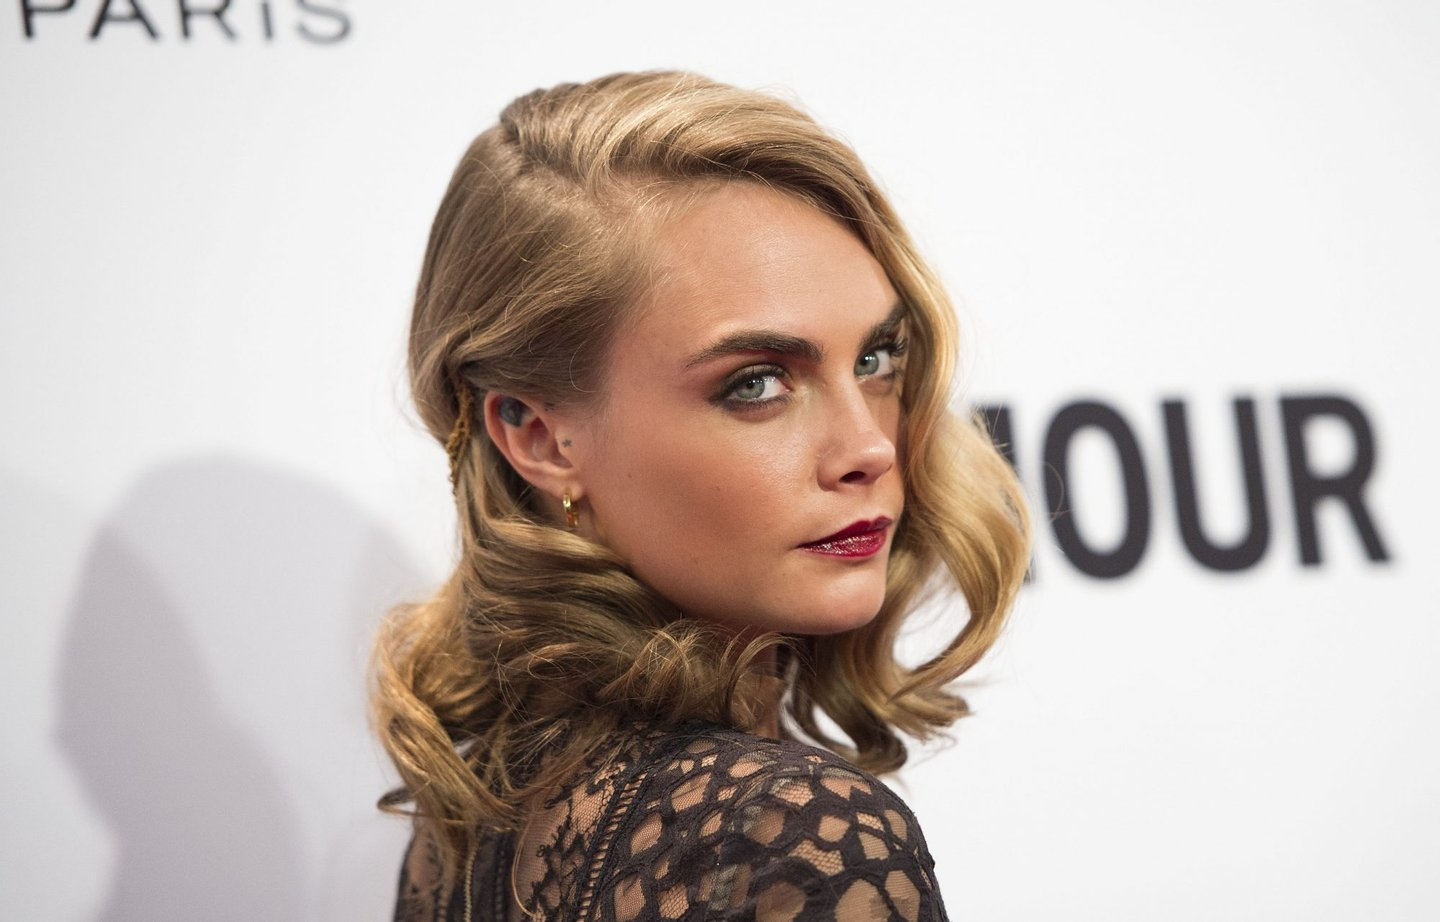 Model Cara Delevingne attends 2016 Glamour Women Of The Year Awards in Hollywood, California, on November 14, 2016. / AFP / VALERIE MACON (Photo credit should read VALERIE MACON/AFP/Getty Images)